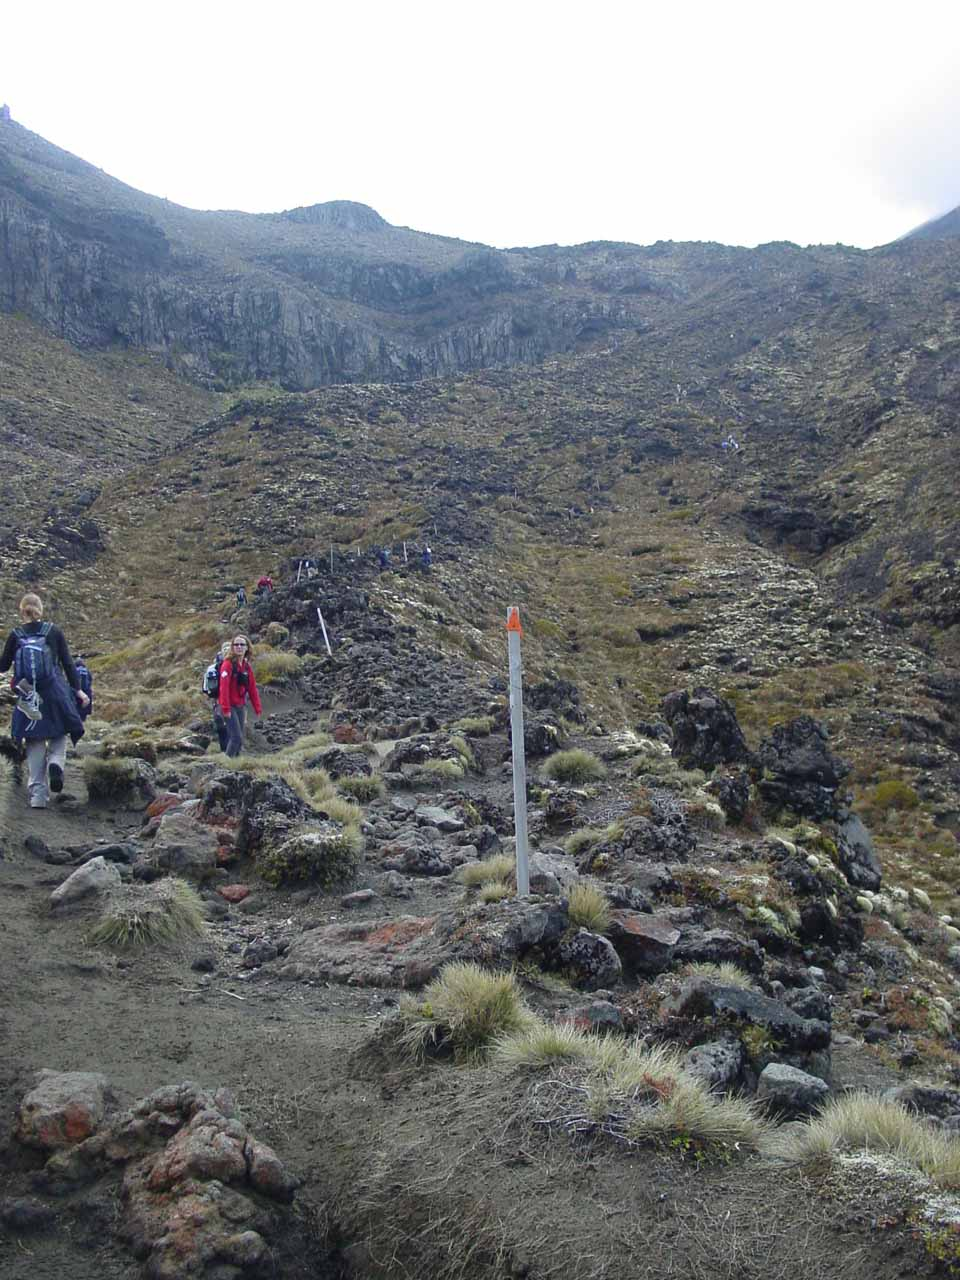 On the steep climb up to the South Crater on the Tongariro Crossing